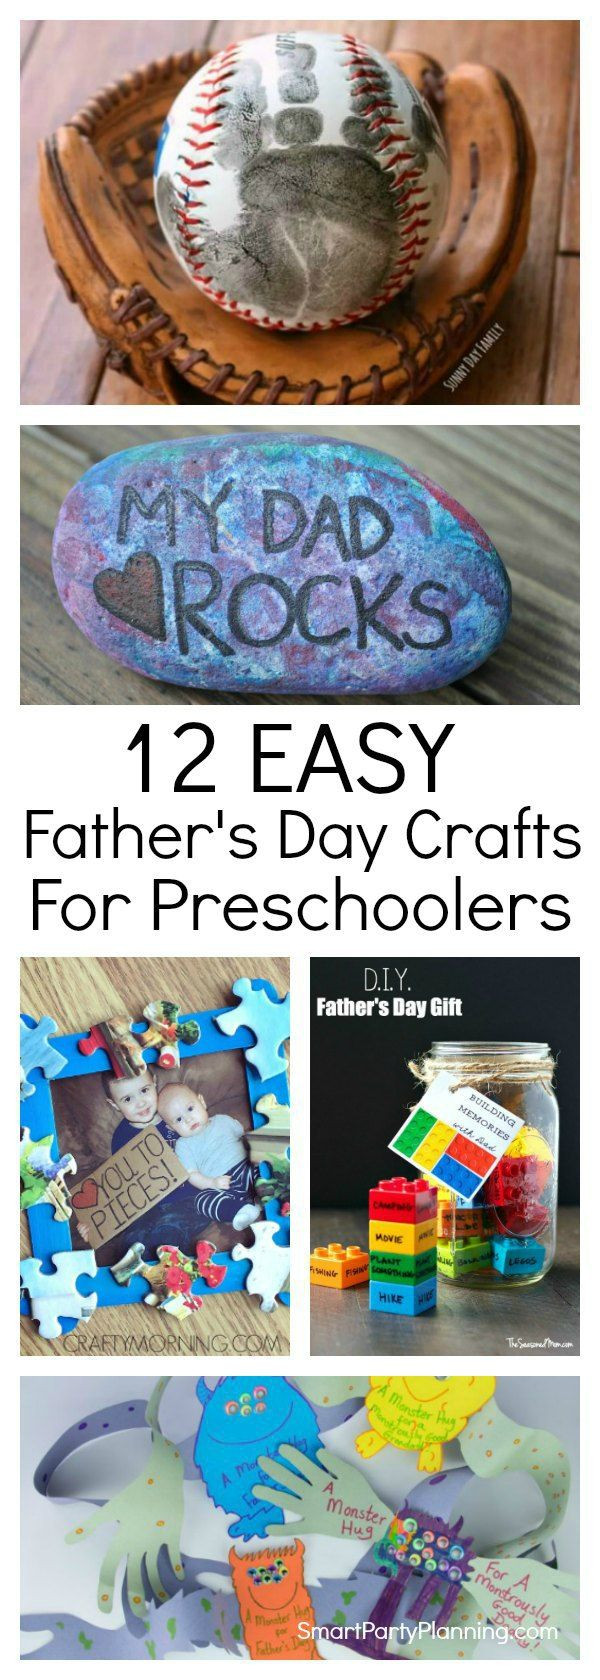 Mother'S Day Gift Ideas For Preschoolers  Best 25 Dad crafts ideas on Pinterest